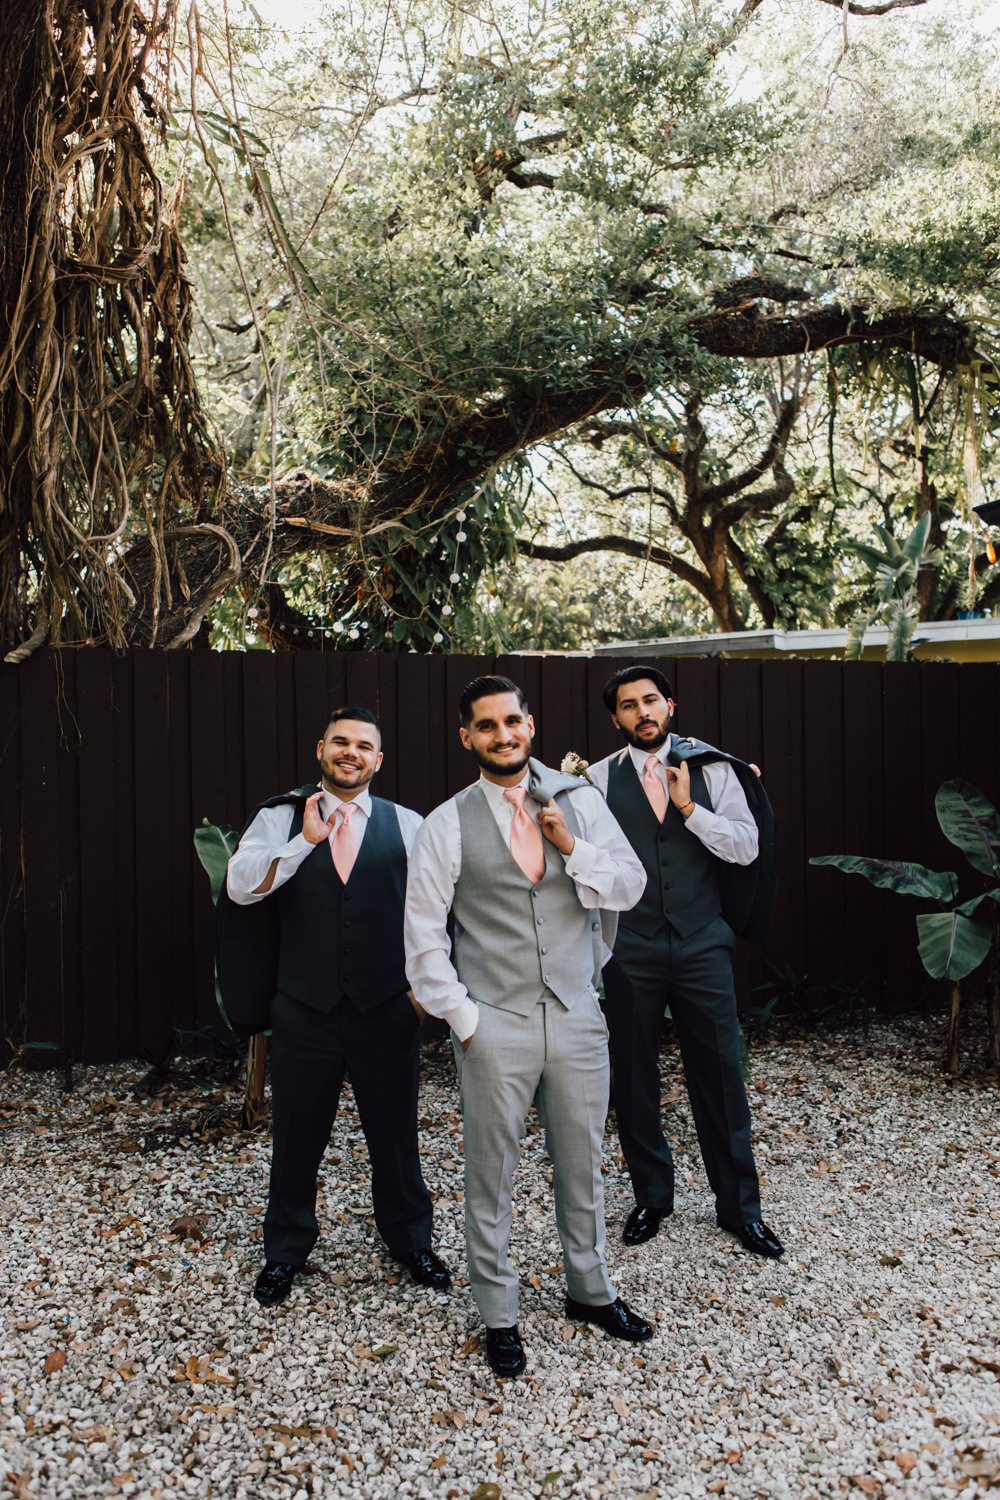 Groomsmen Groom Suits Grey Pink Ties Navy Emotional Outdoor Wedding Laura Memory Photography